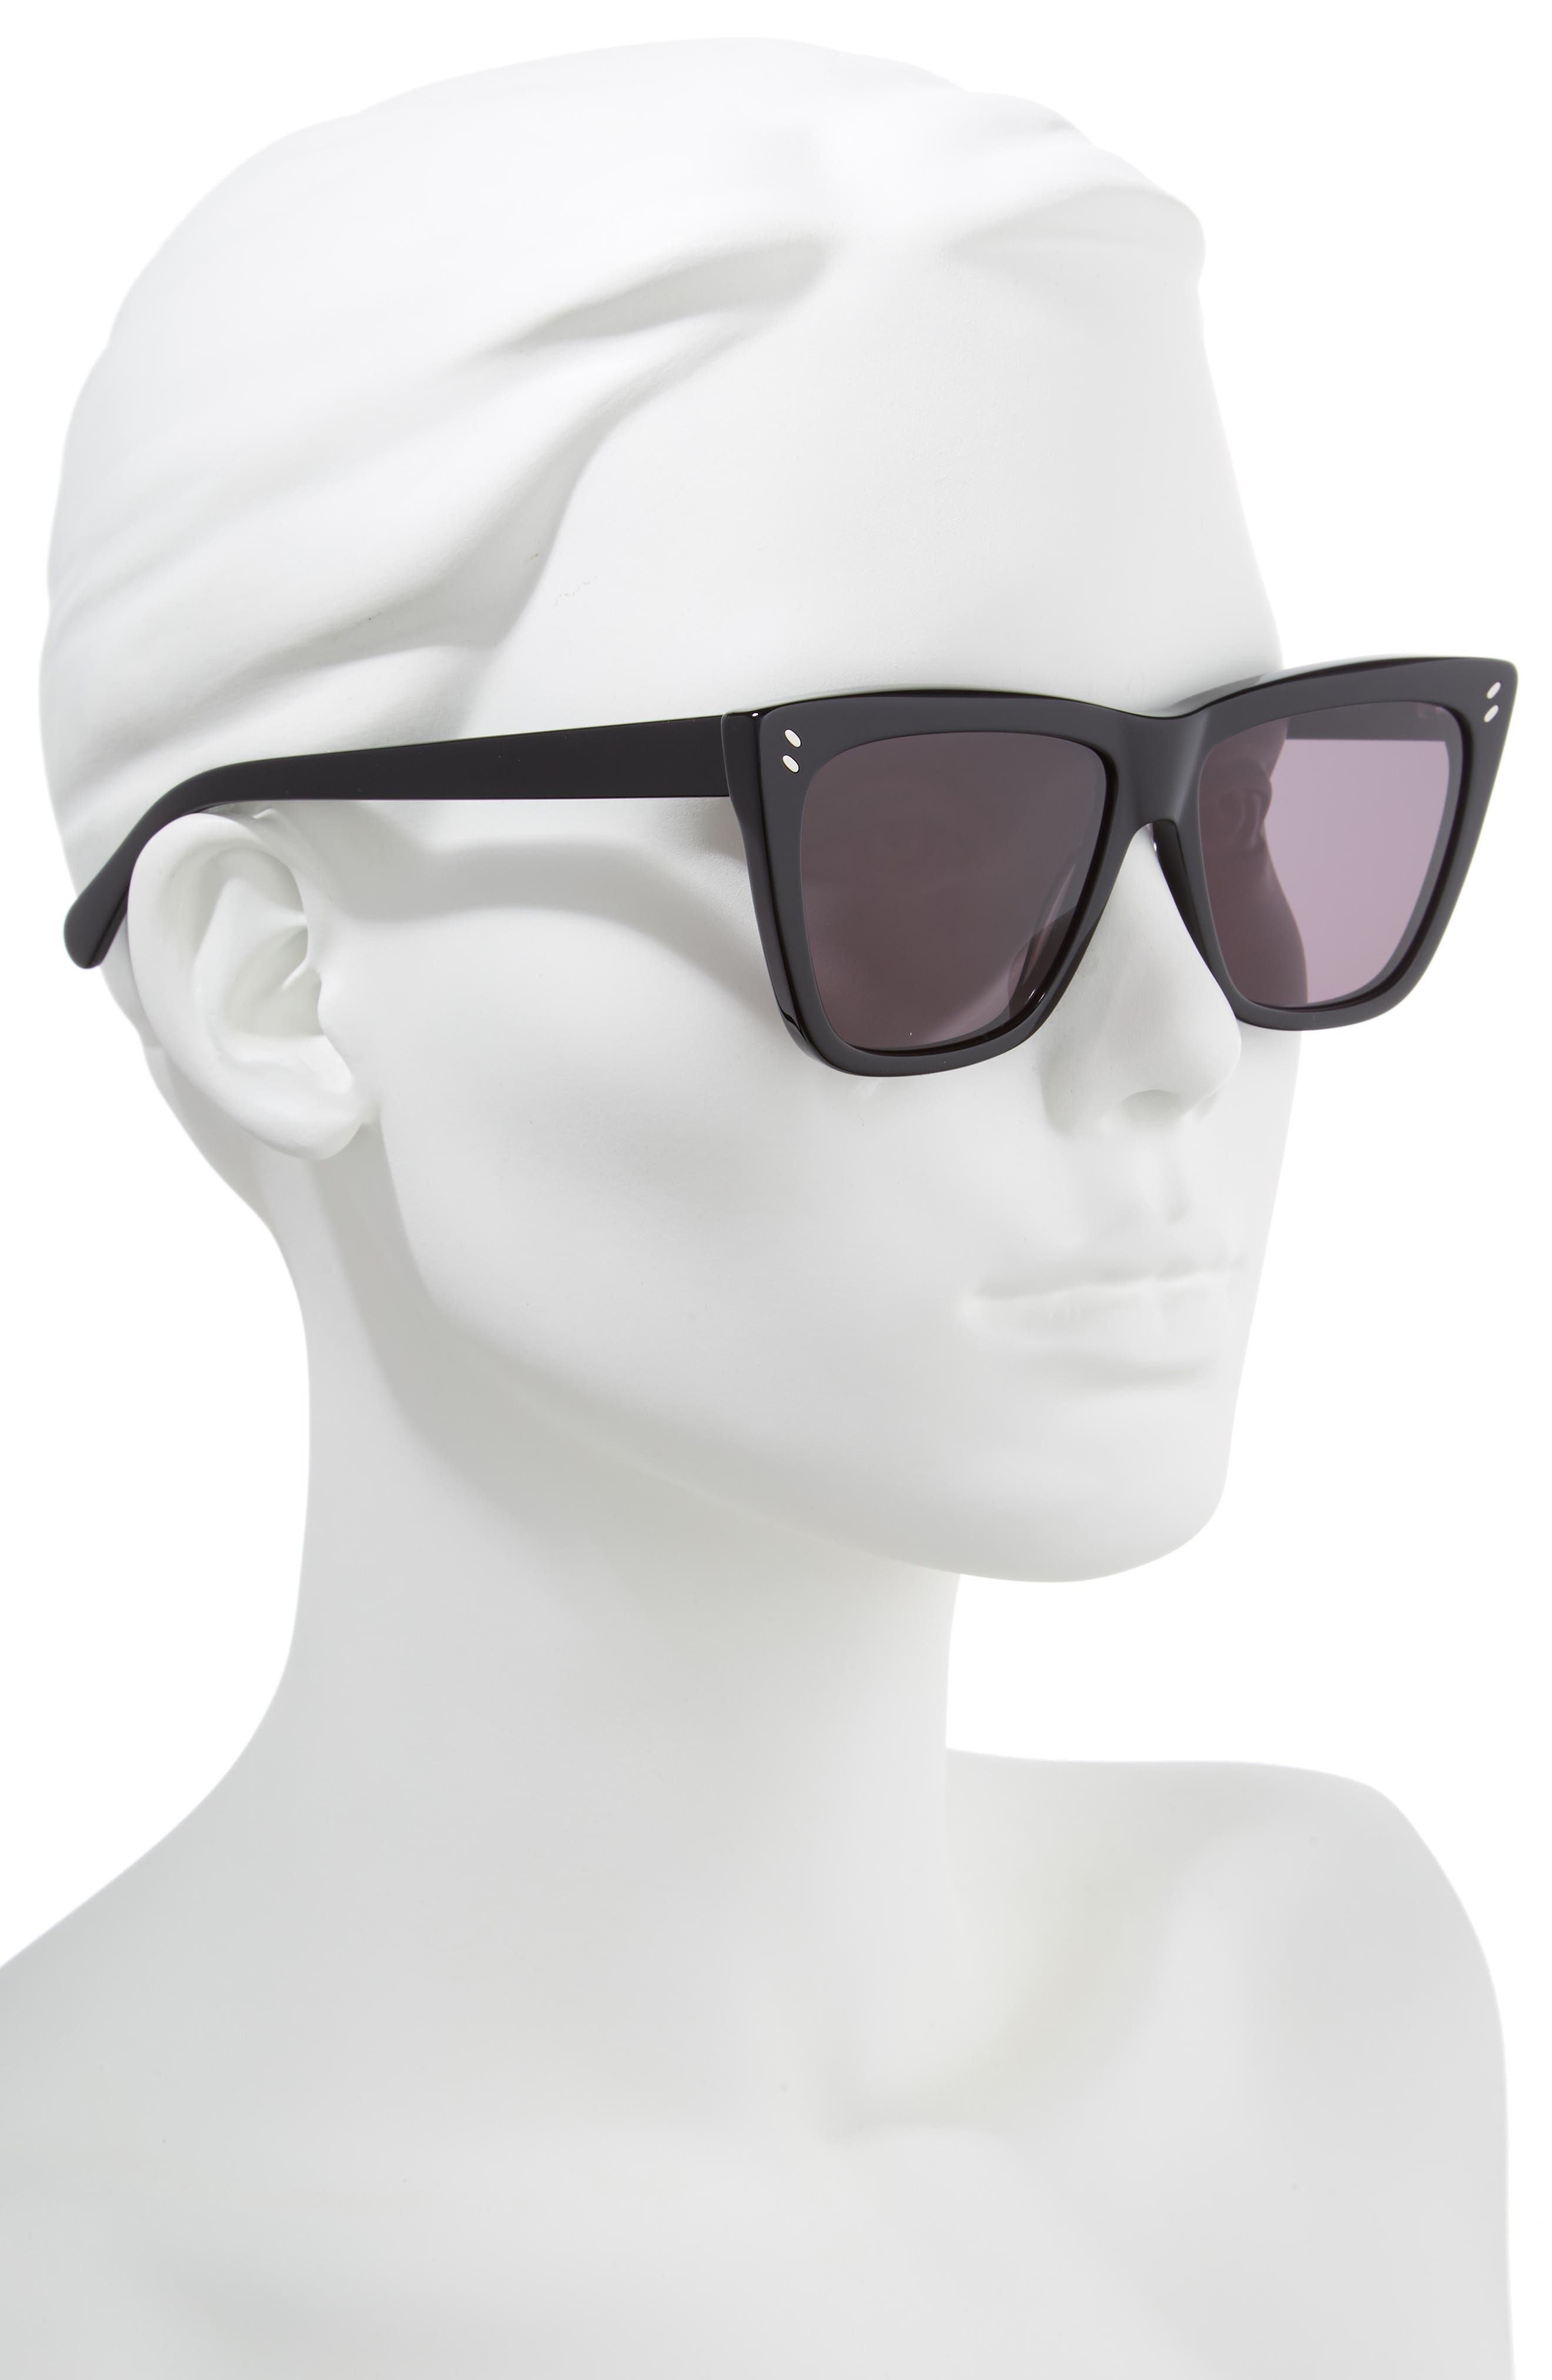 55mm Polarized Sunglasses,                             Alternate thumbnail 3, color,